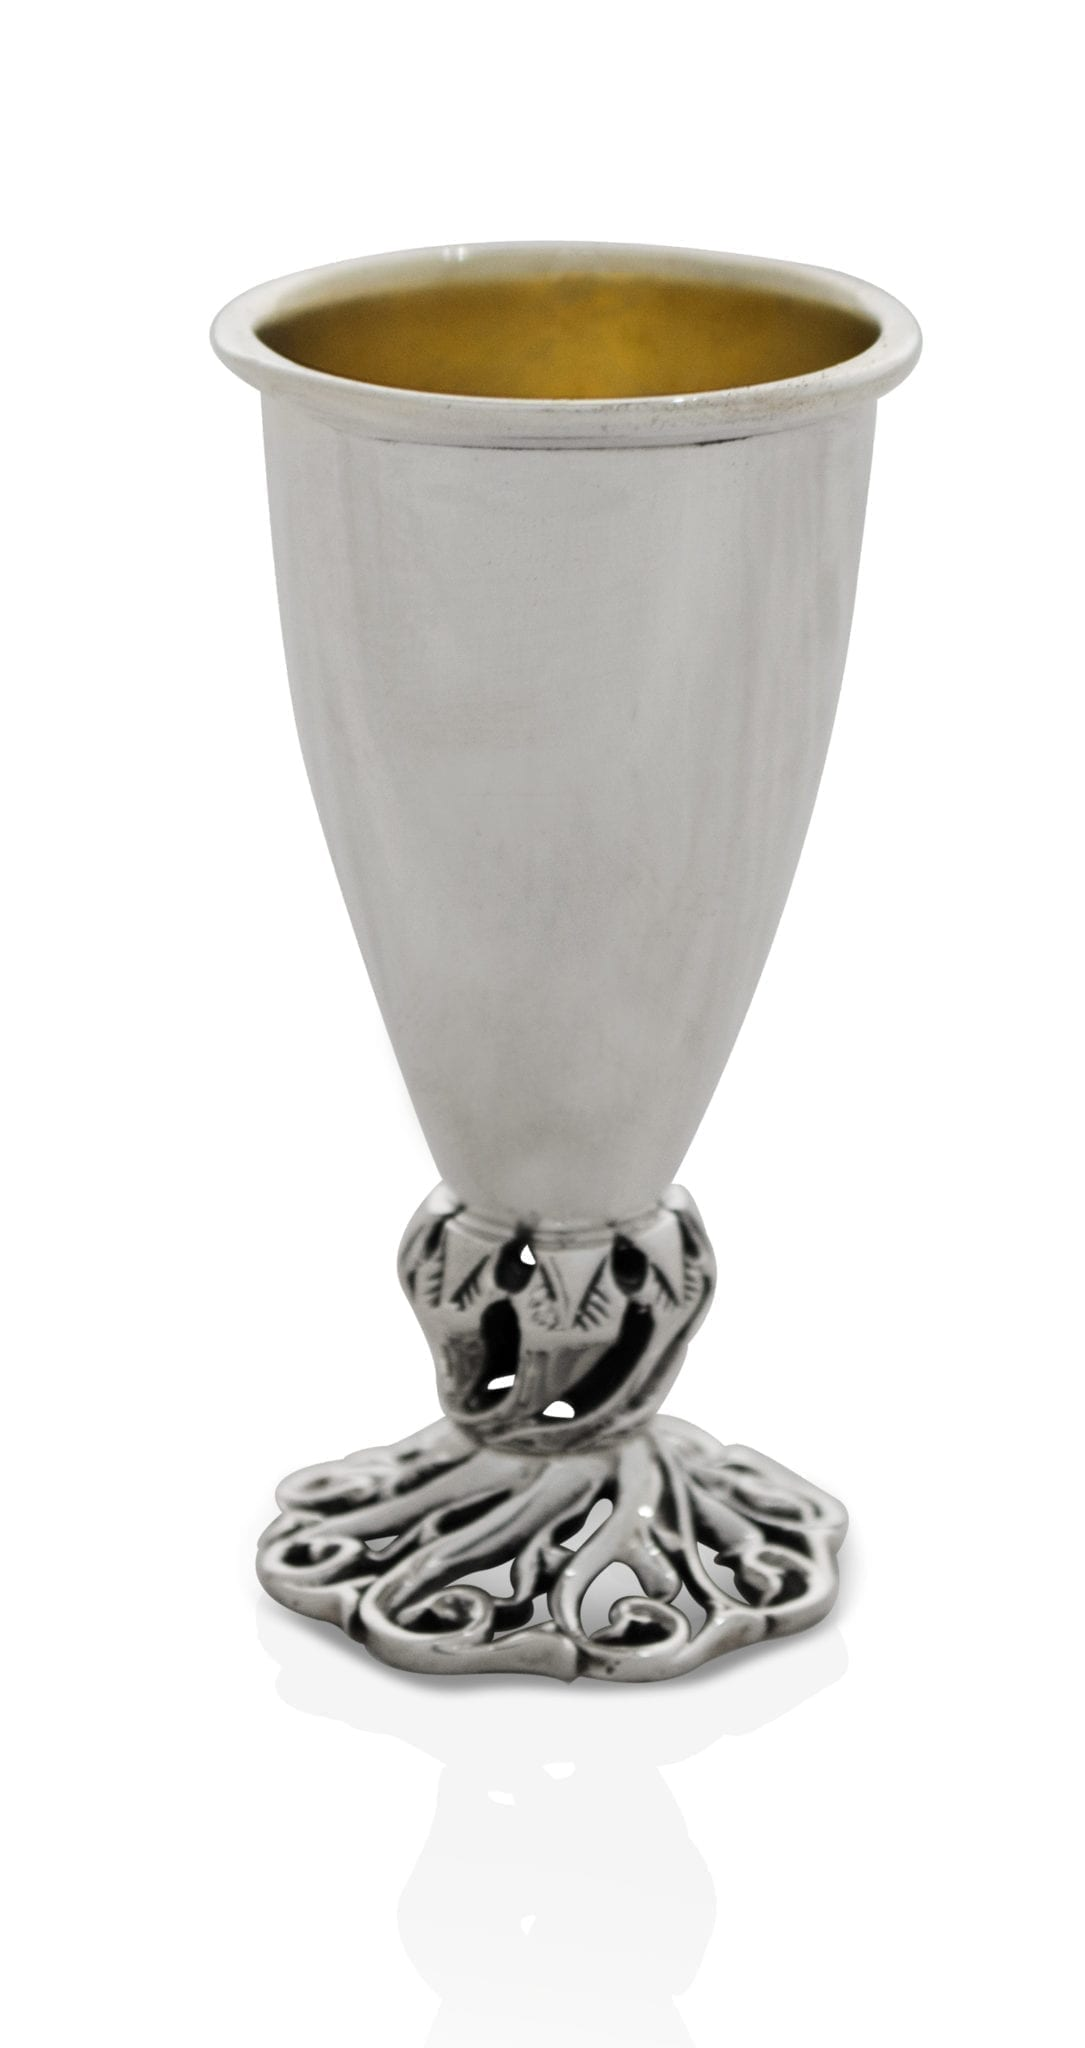 sterling silver liquor cup, swirl cut-out base design, judaica made in israel